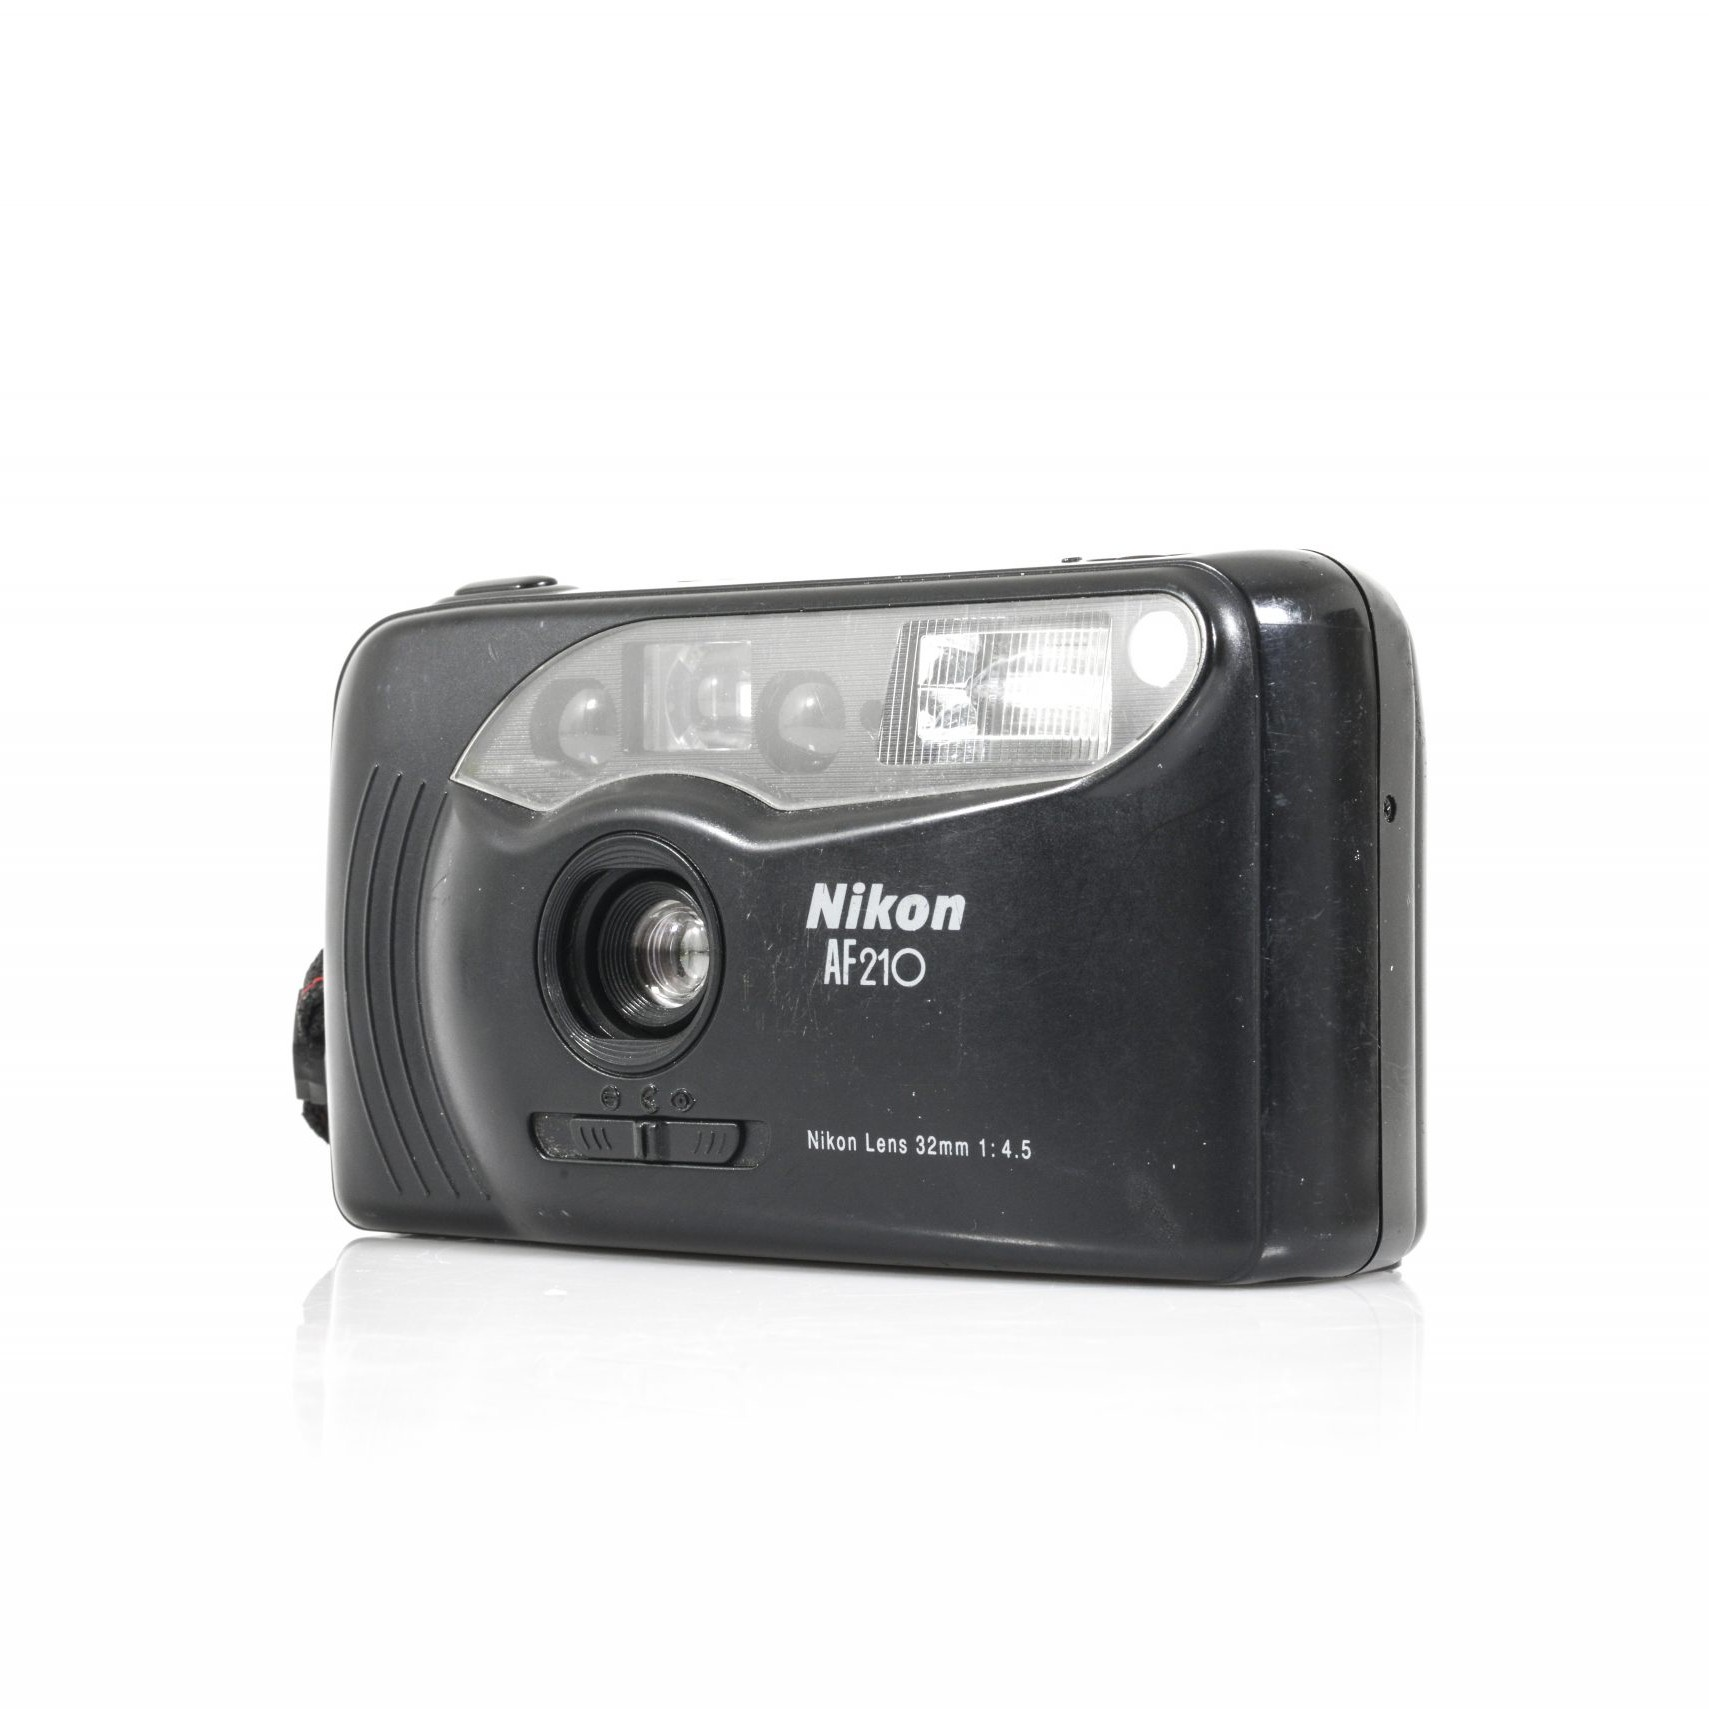 Nikon AF210 35mm Film Point & Shoot Camera